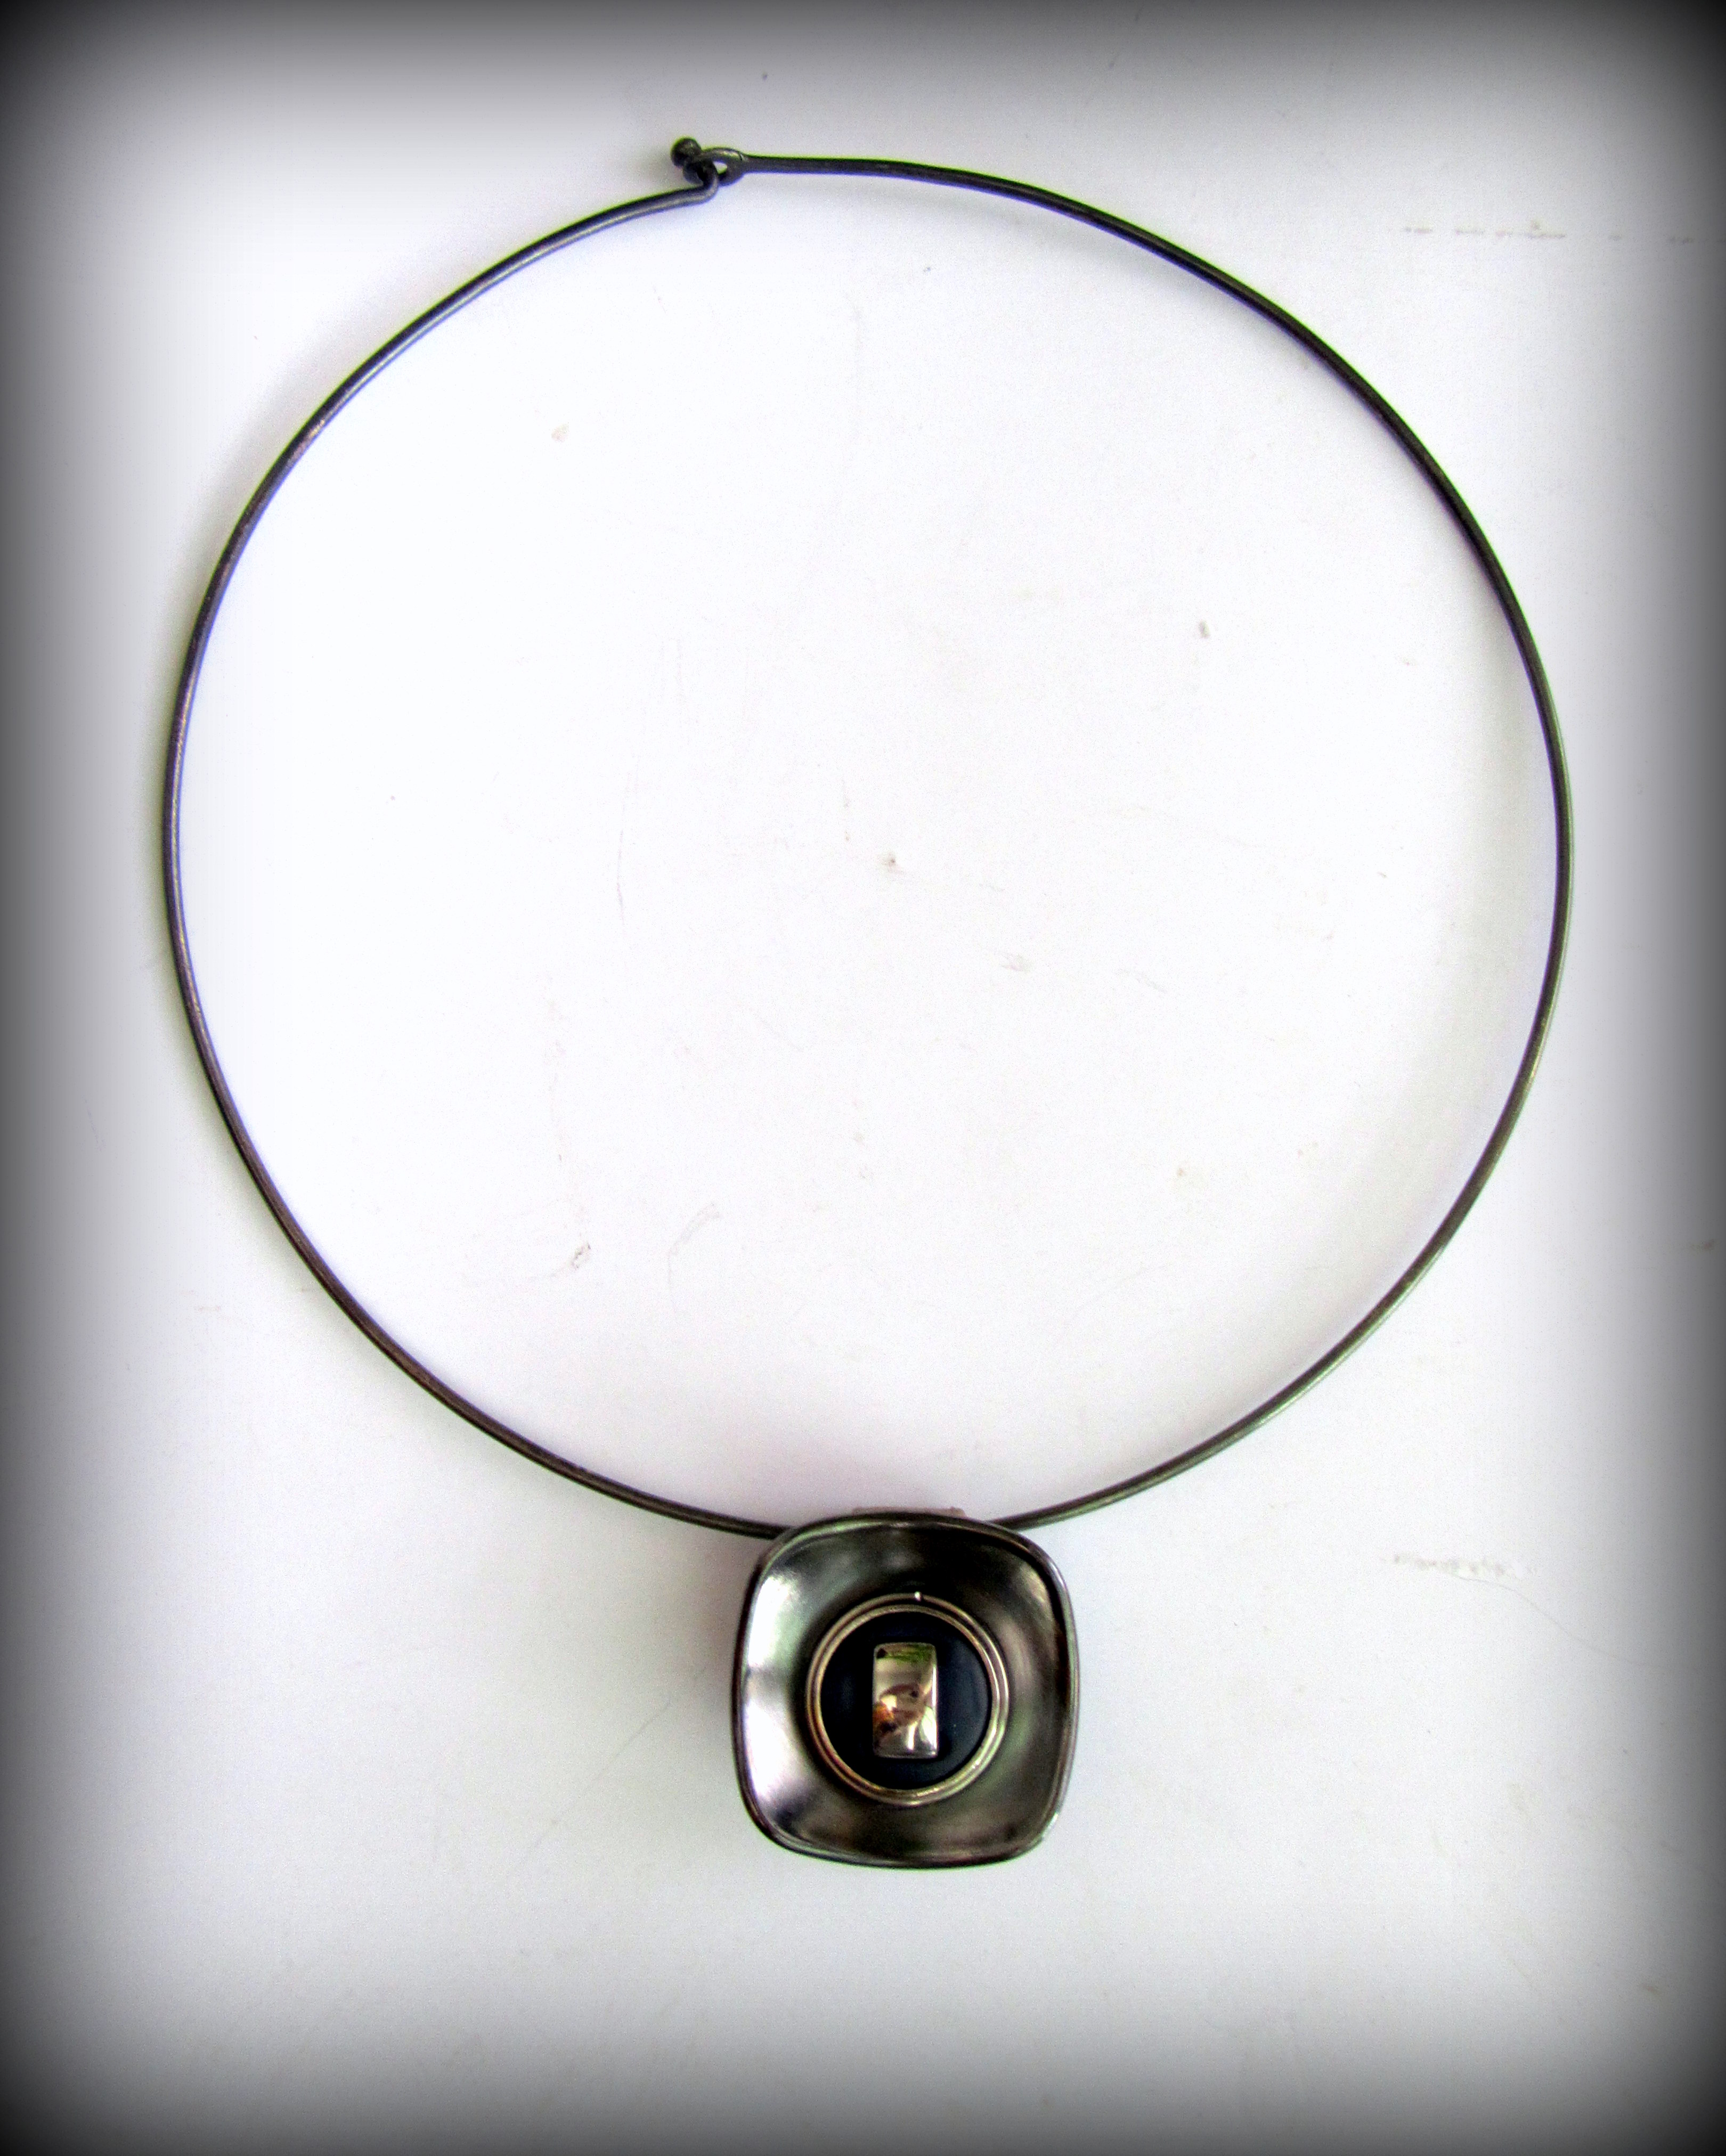 Necklace in minimalist style